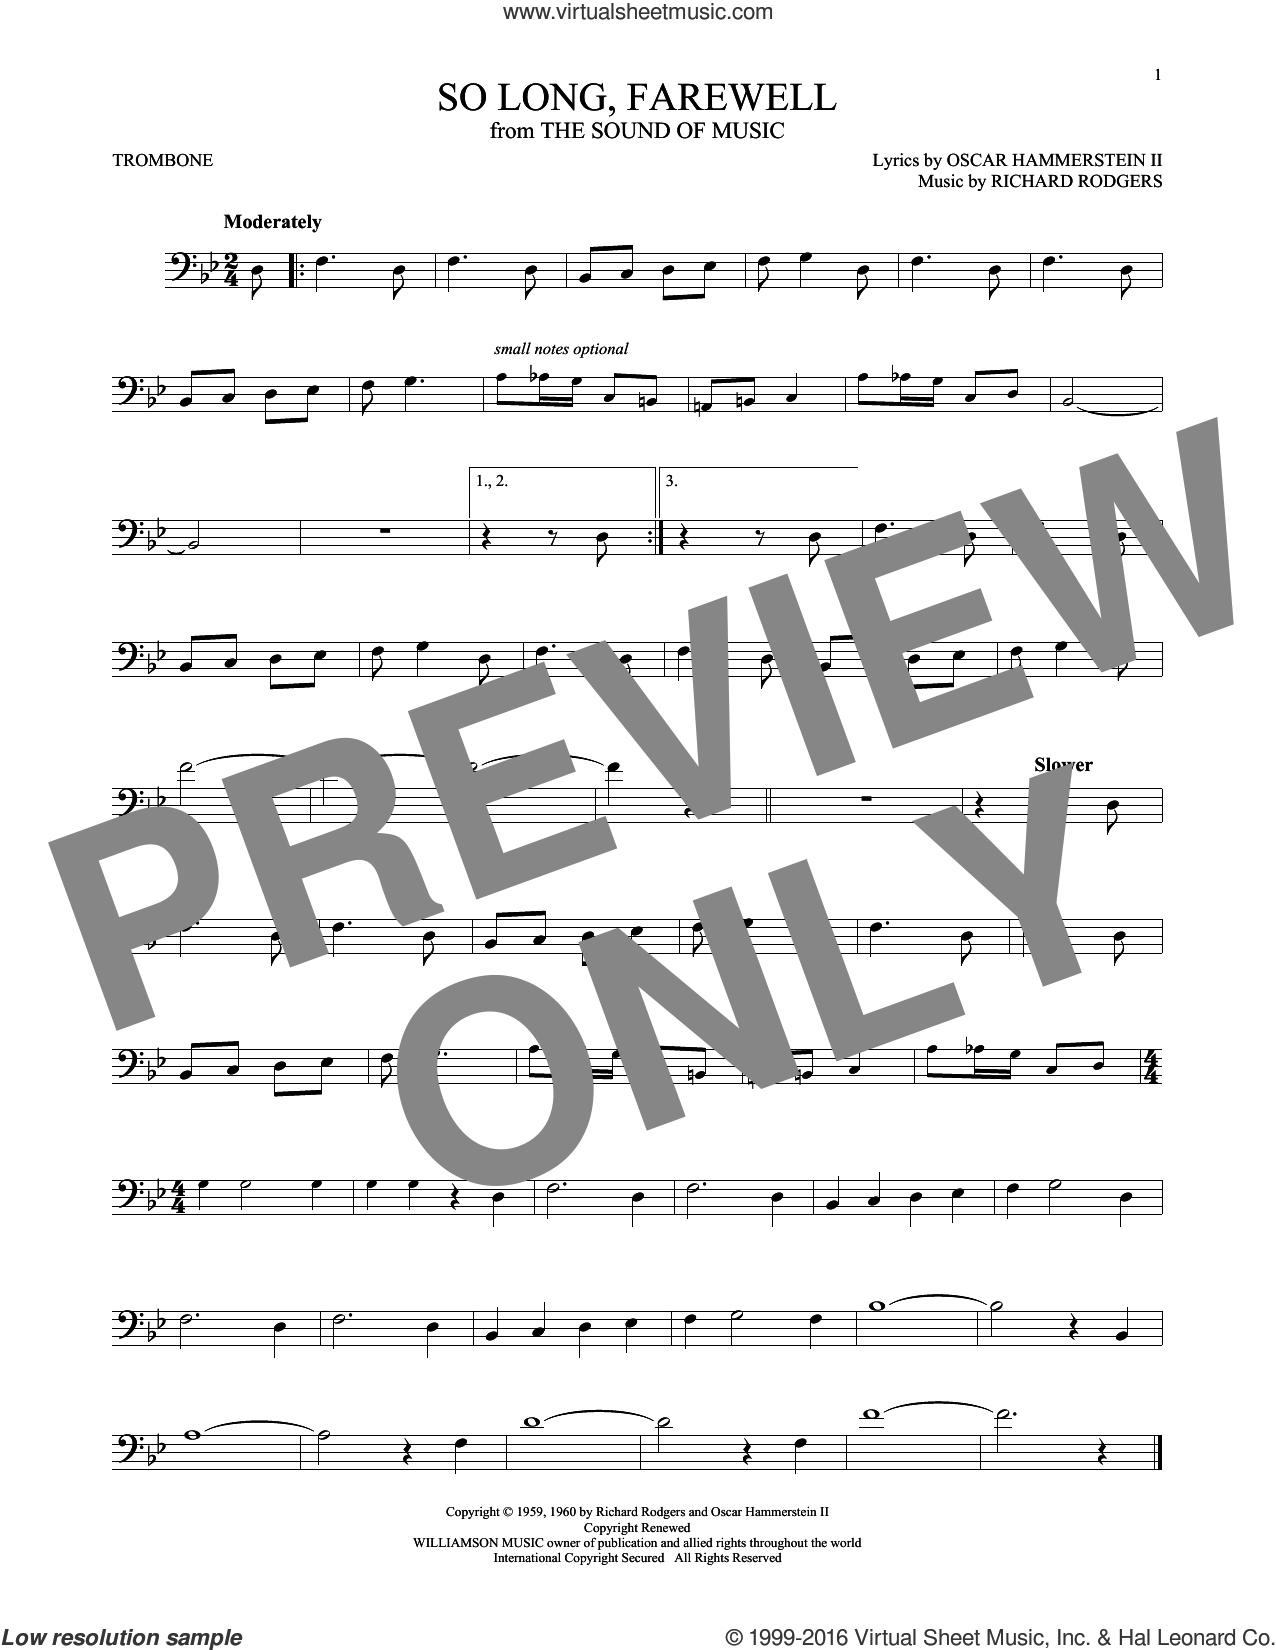 So Long, Farewell sheet music for trombone solo by Richard Rodgers, Rodgers & Hammerstein and Oscar II Hammerstein. Score Image Preview.